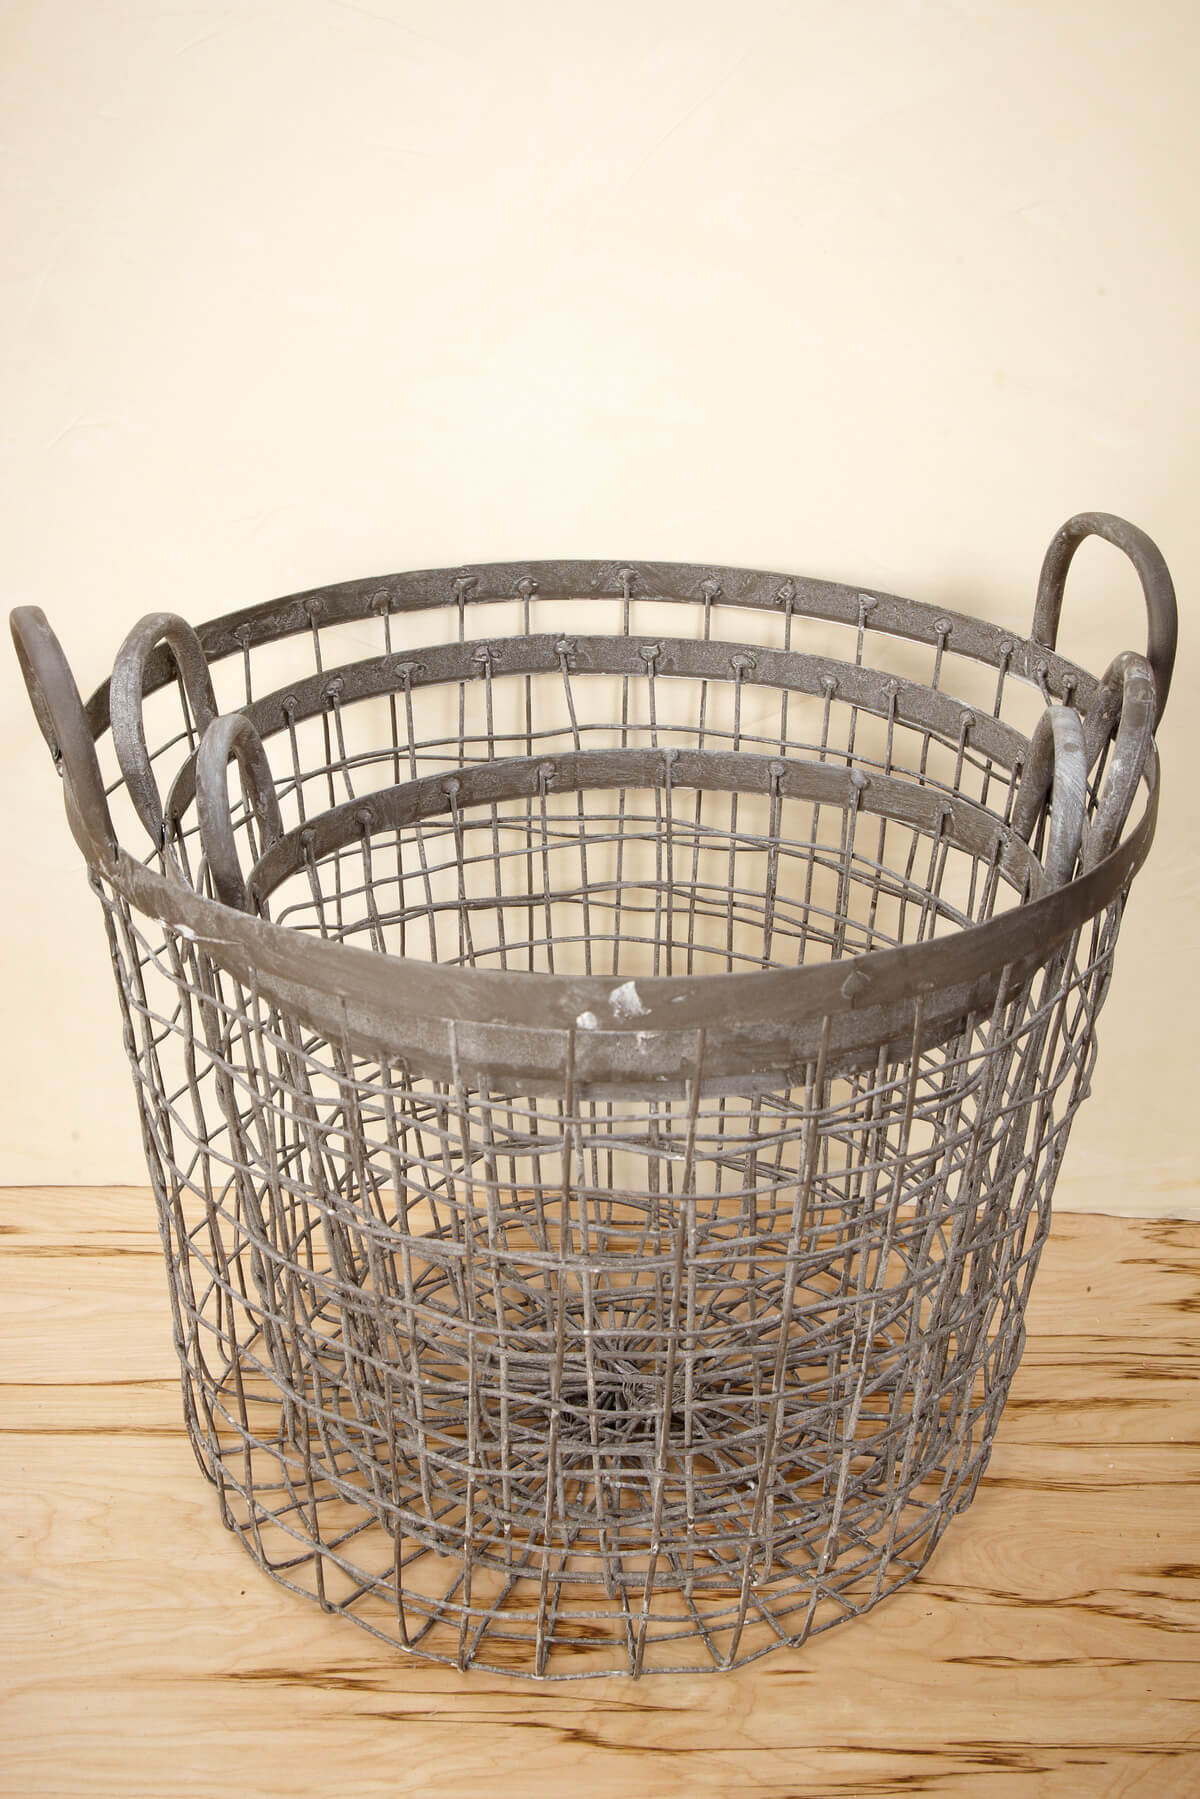 Wall Mount Wire Baskets. Showing 40 of results that match your query. Search Product Result. Product - Spectrum Diversified Designs Vintage Wall Mount Basket. Product Image. Price $ 8. 00 - $ 8. Product Title. Spectrum Diversified Designs Vintage Wall Mount Basket.